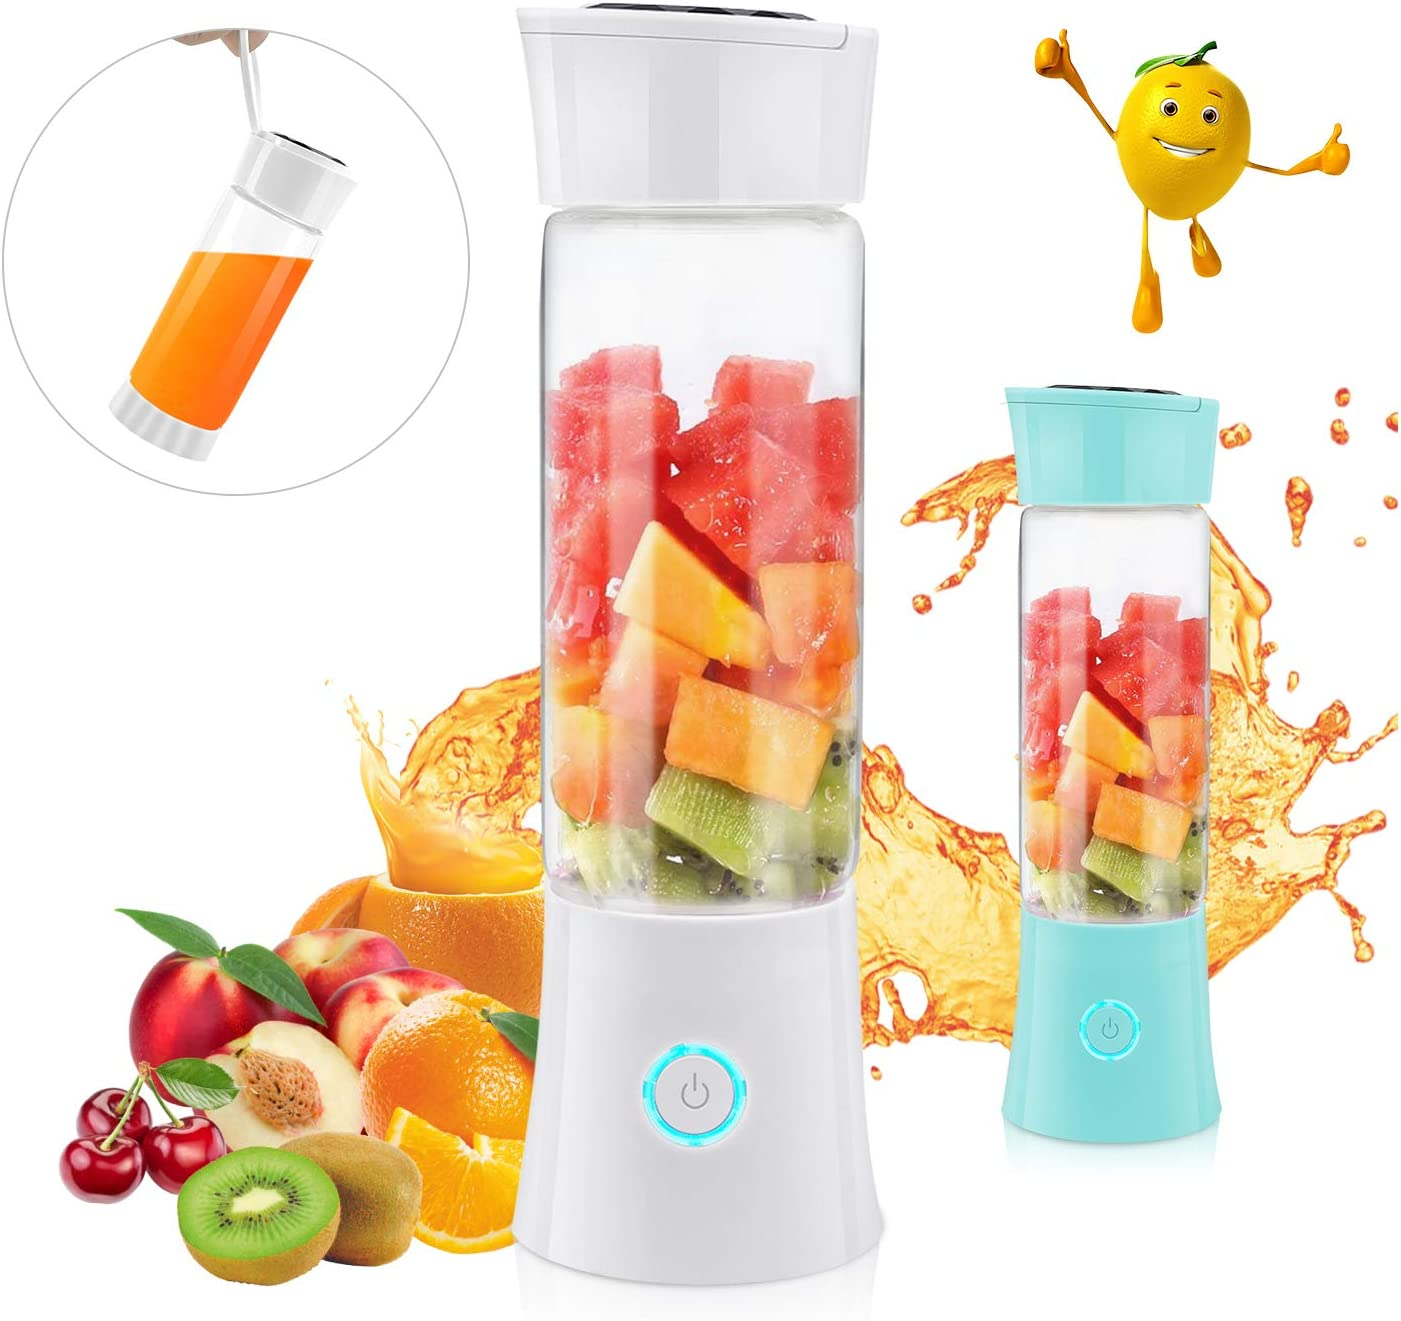 Portable Blender, Supkiir USB Rechargeable Mini Juicer Cup with Handle, Smoothie Blender with 6 Blades with 4000mAh Batteries, 480ml Household Fruit Mixer for Travel Office Sports School